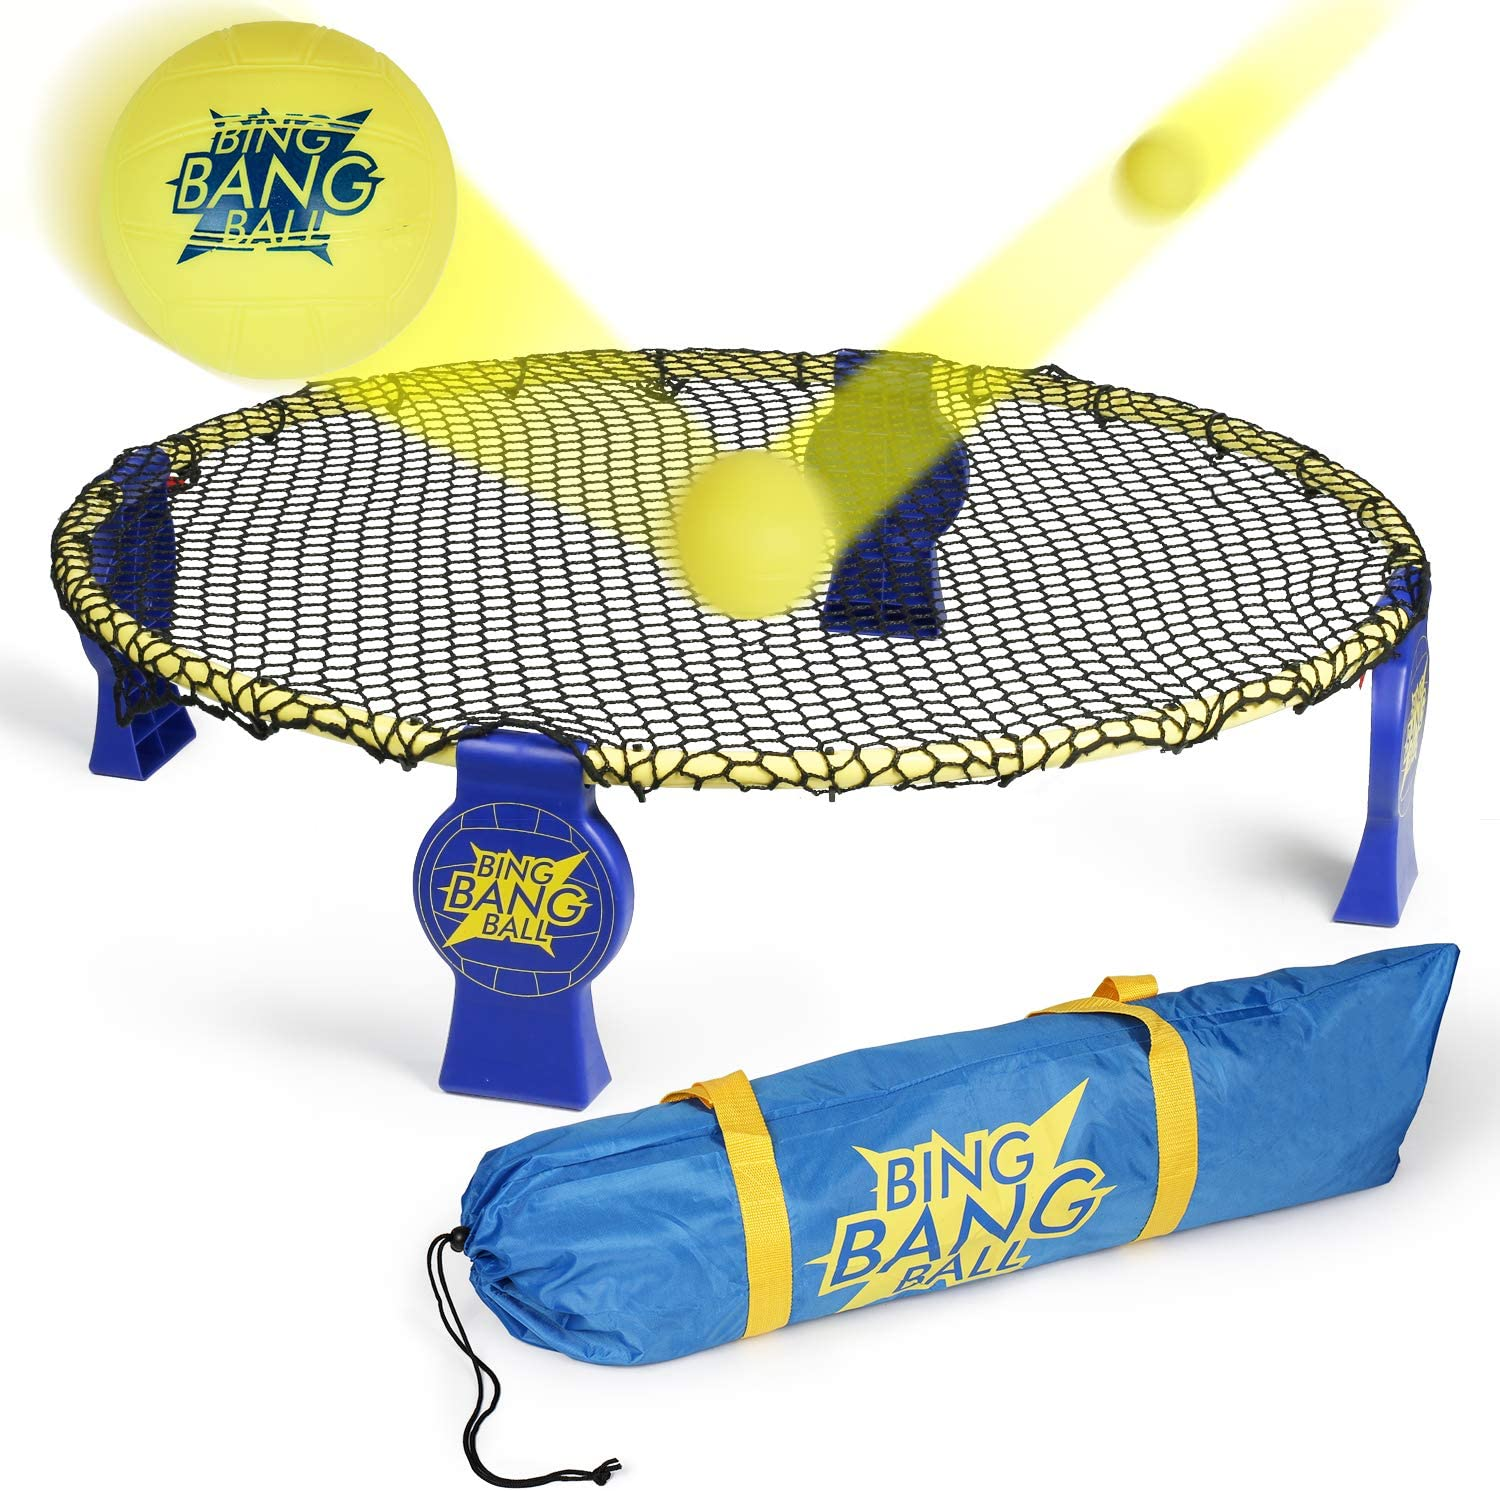 A11N 2019 Bing Bang Ball Game Set; Includes Round Net-Upgraded EVO-Honeycomb PE Net and Steady Metal Frame, 3 Balls, Bag and Rules; Volleyball Spike Game for Beach, Lawn, Camping, Tailgate